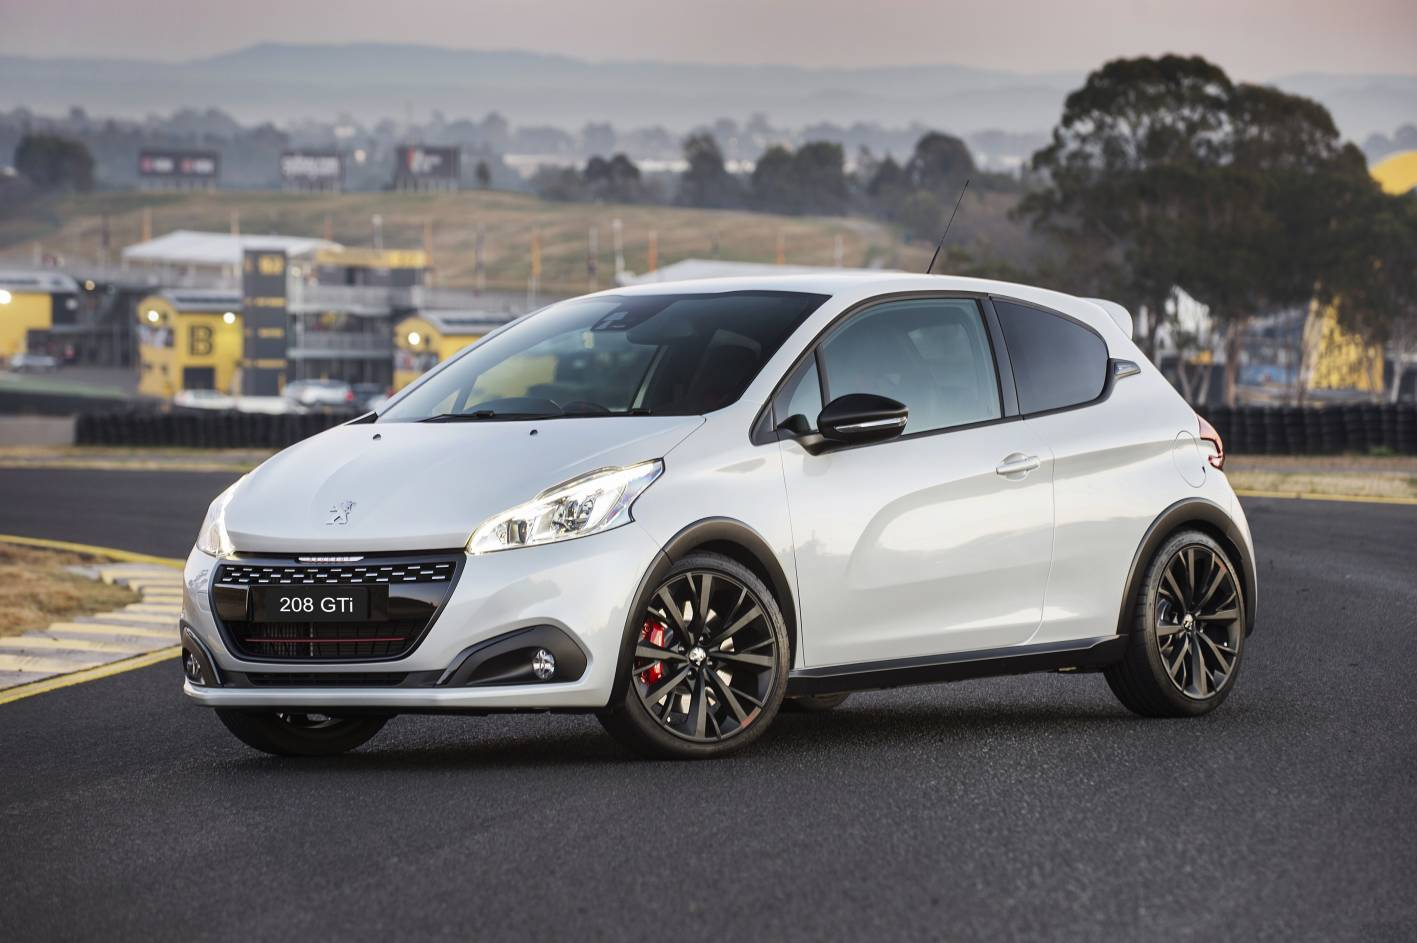 peugeot 208 gti dition d finitive on sale from 33 990 drive away. Black Bedroom Furniture Sets. Home Design Ideas